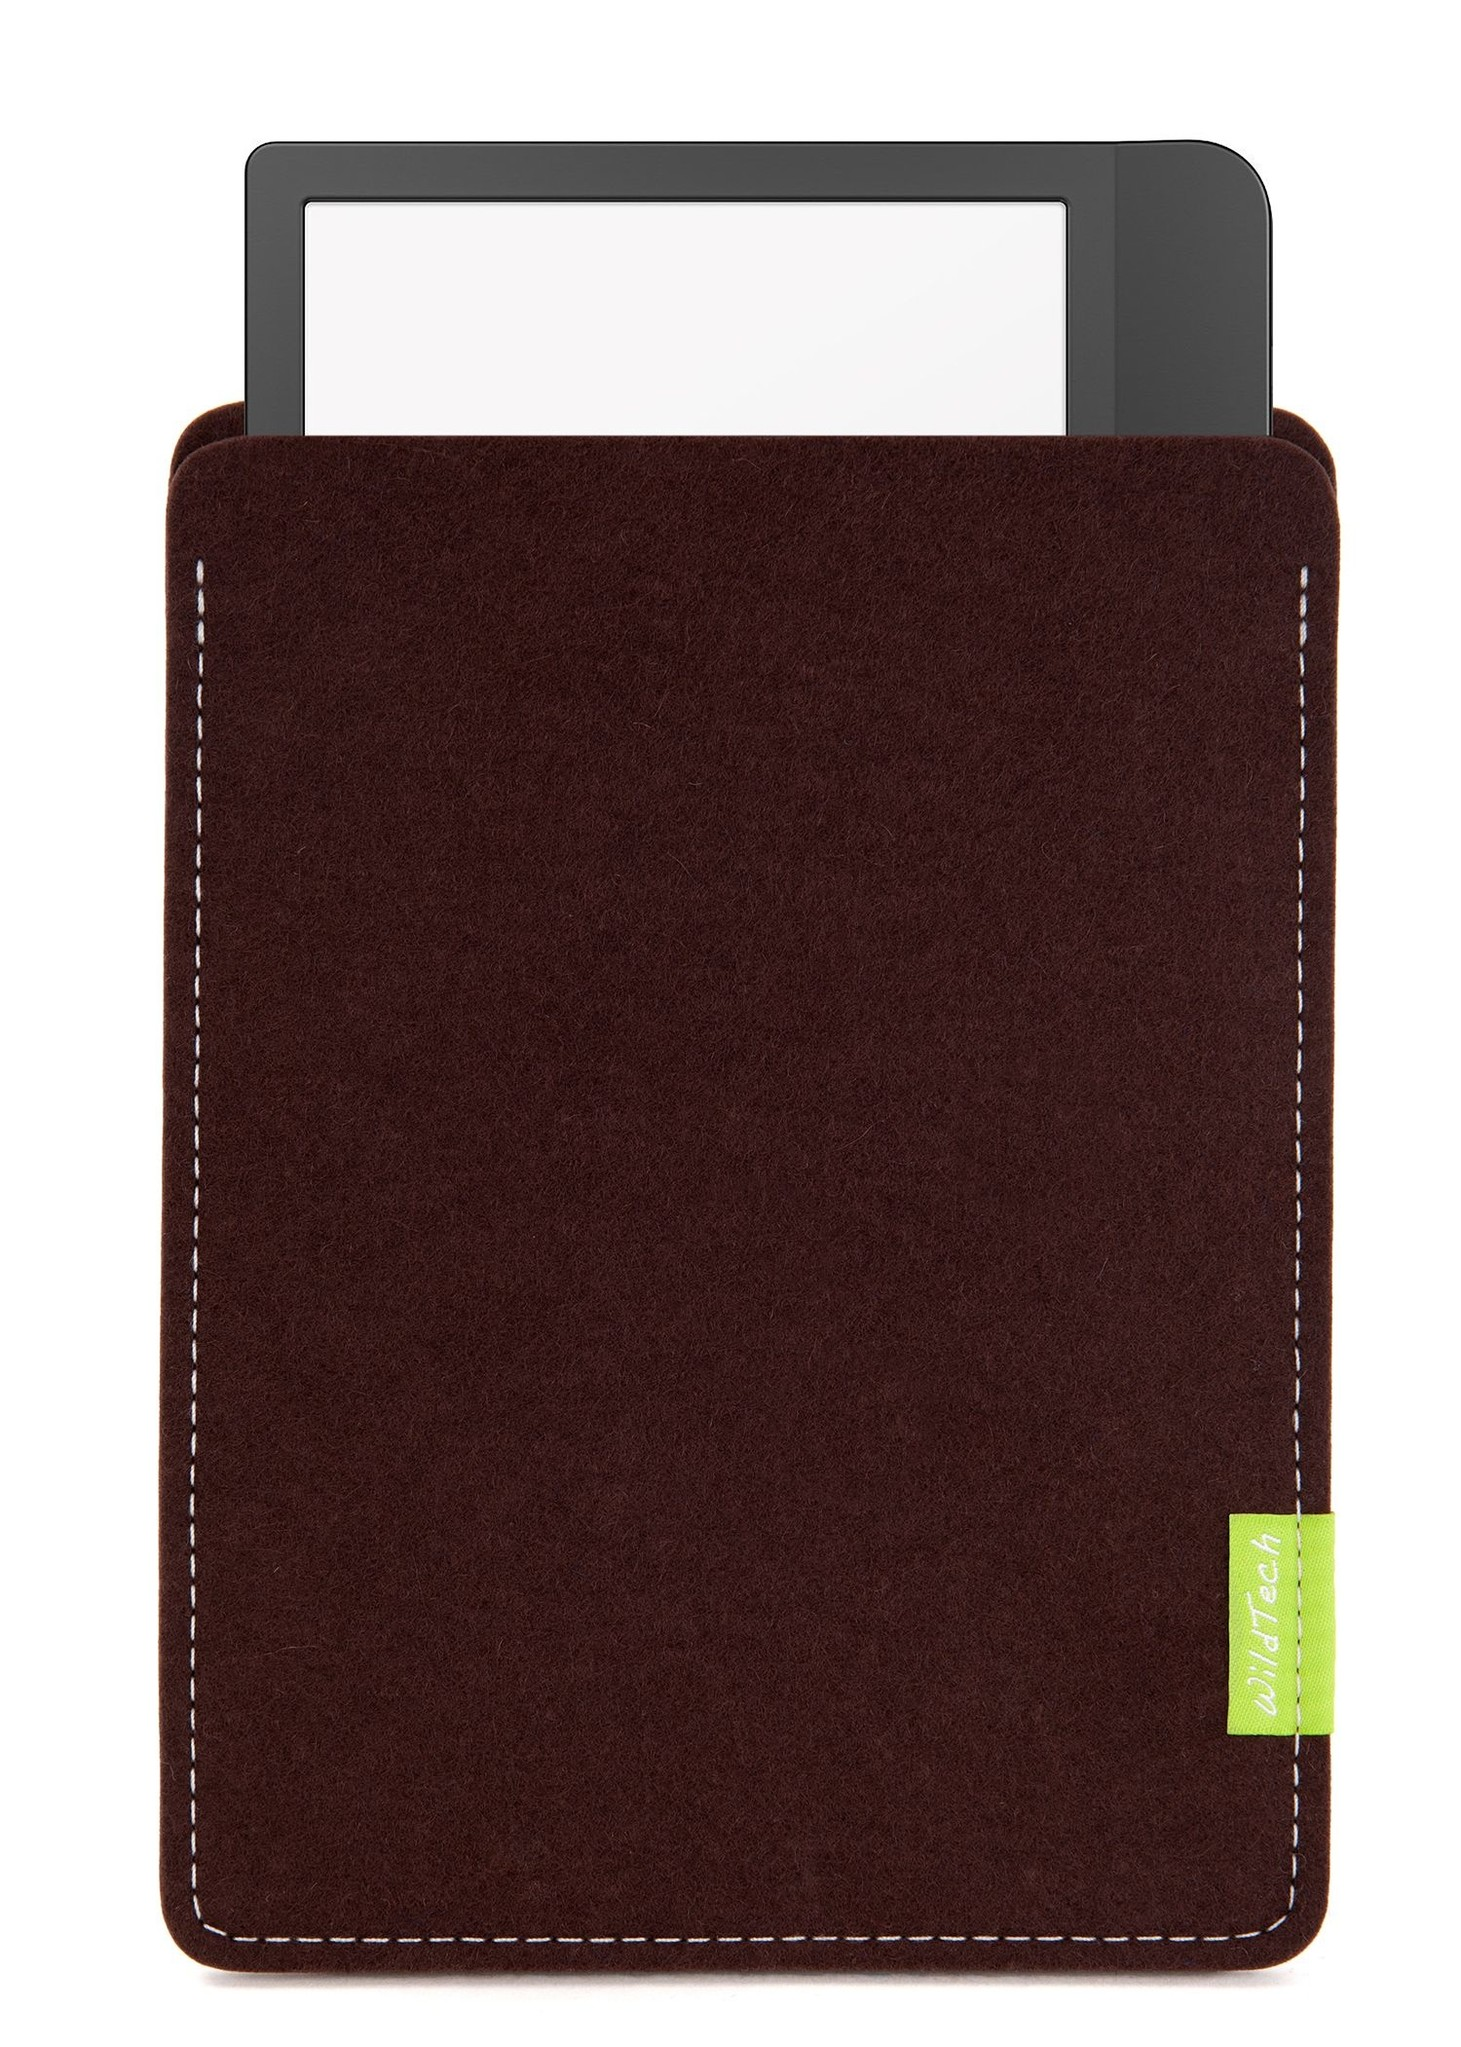 Vision/Page/Shine/Epos Sleeve Dark-Brown-1